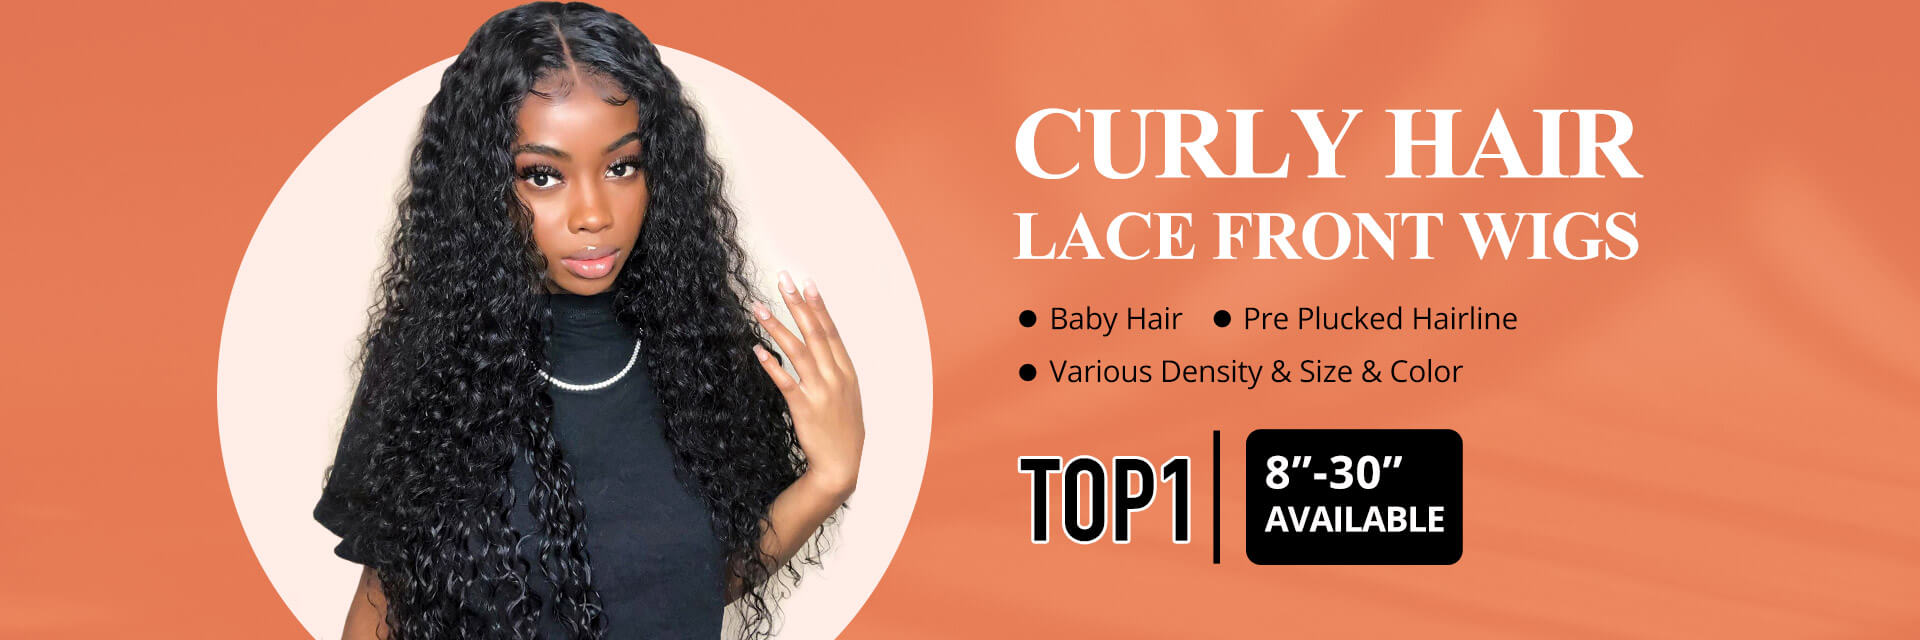 curly hair lace front wigs with baby hair and pre plucked hairline